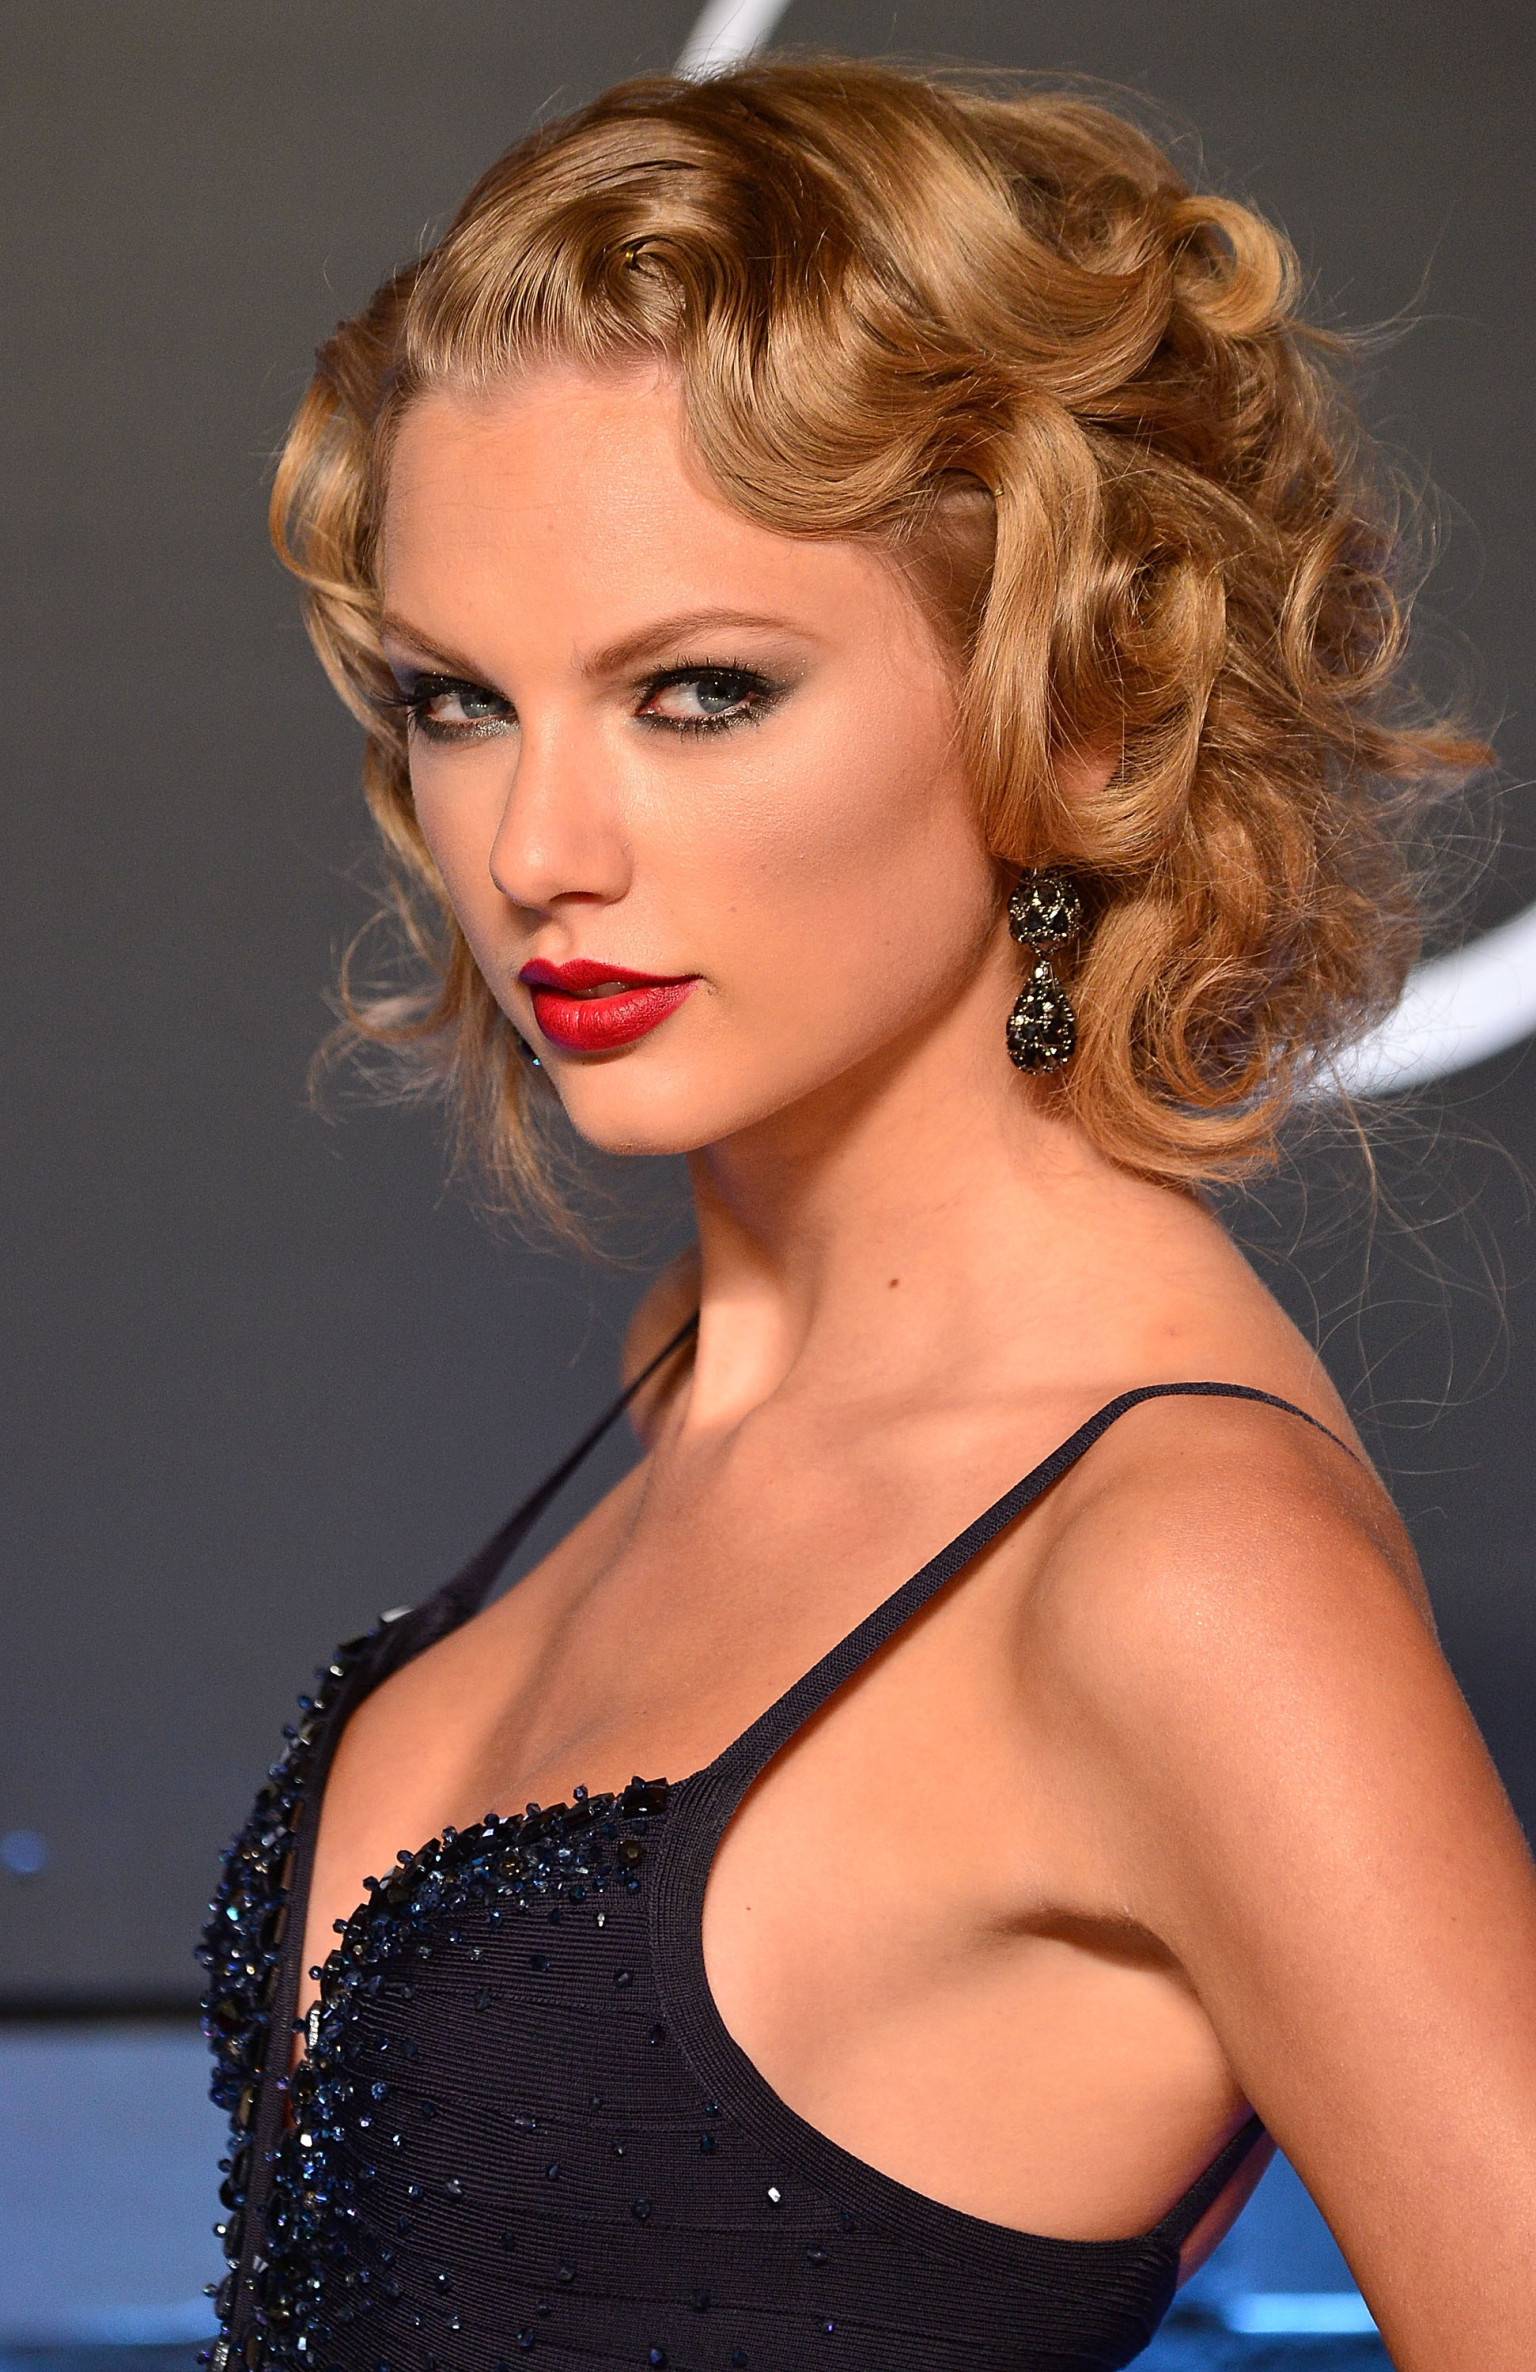 Taylor Swift S Vma Diss Was Misinterpreted Not Aimed At